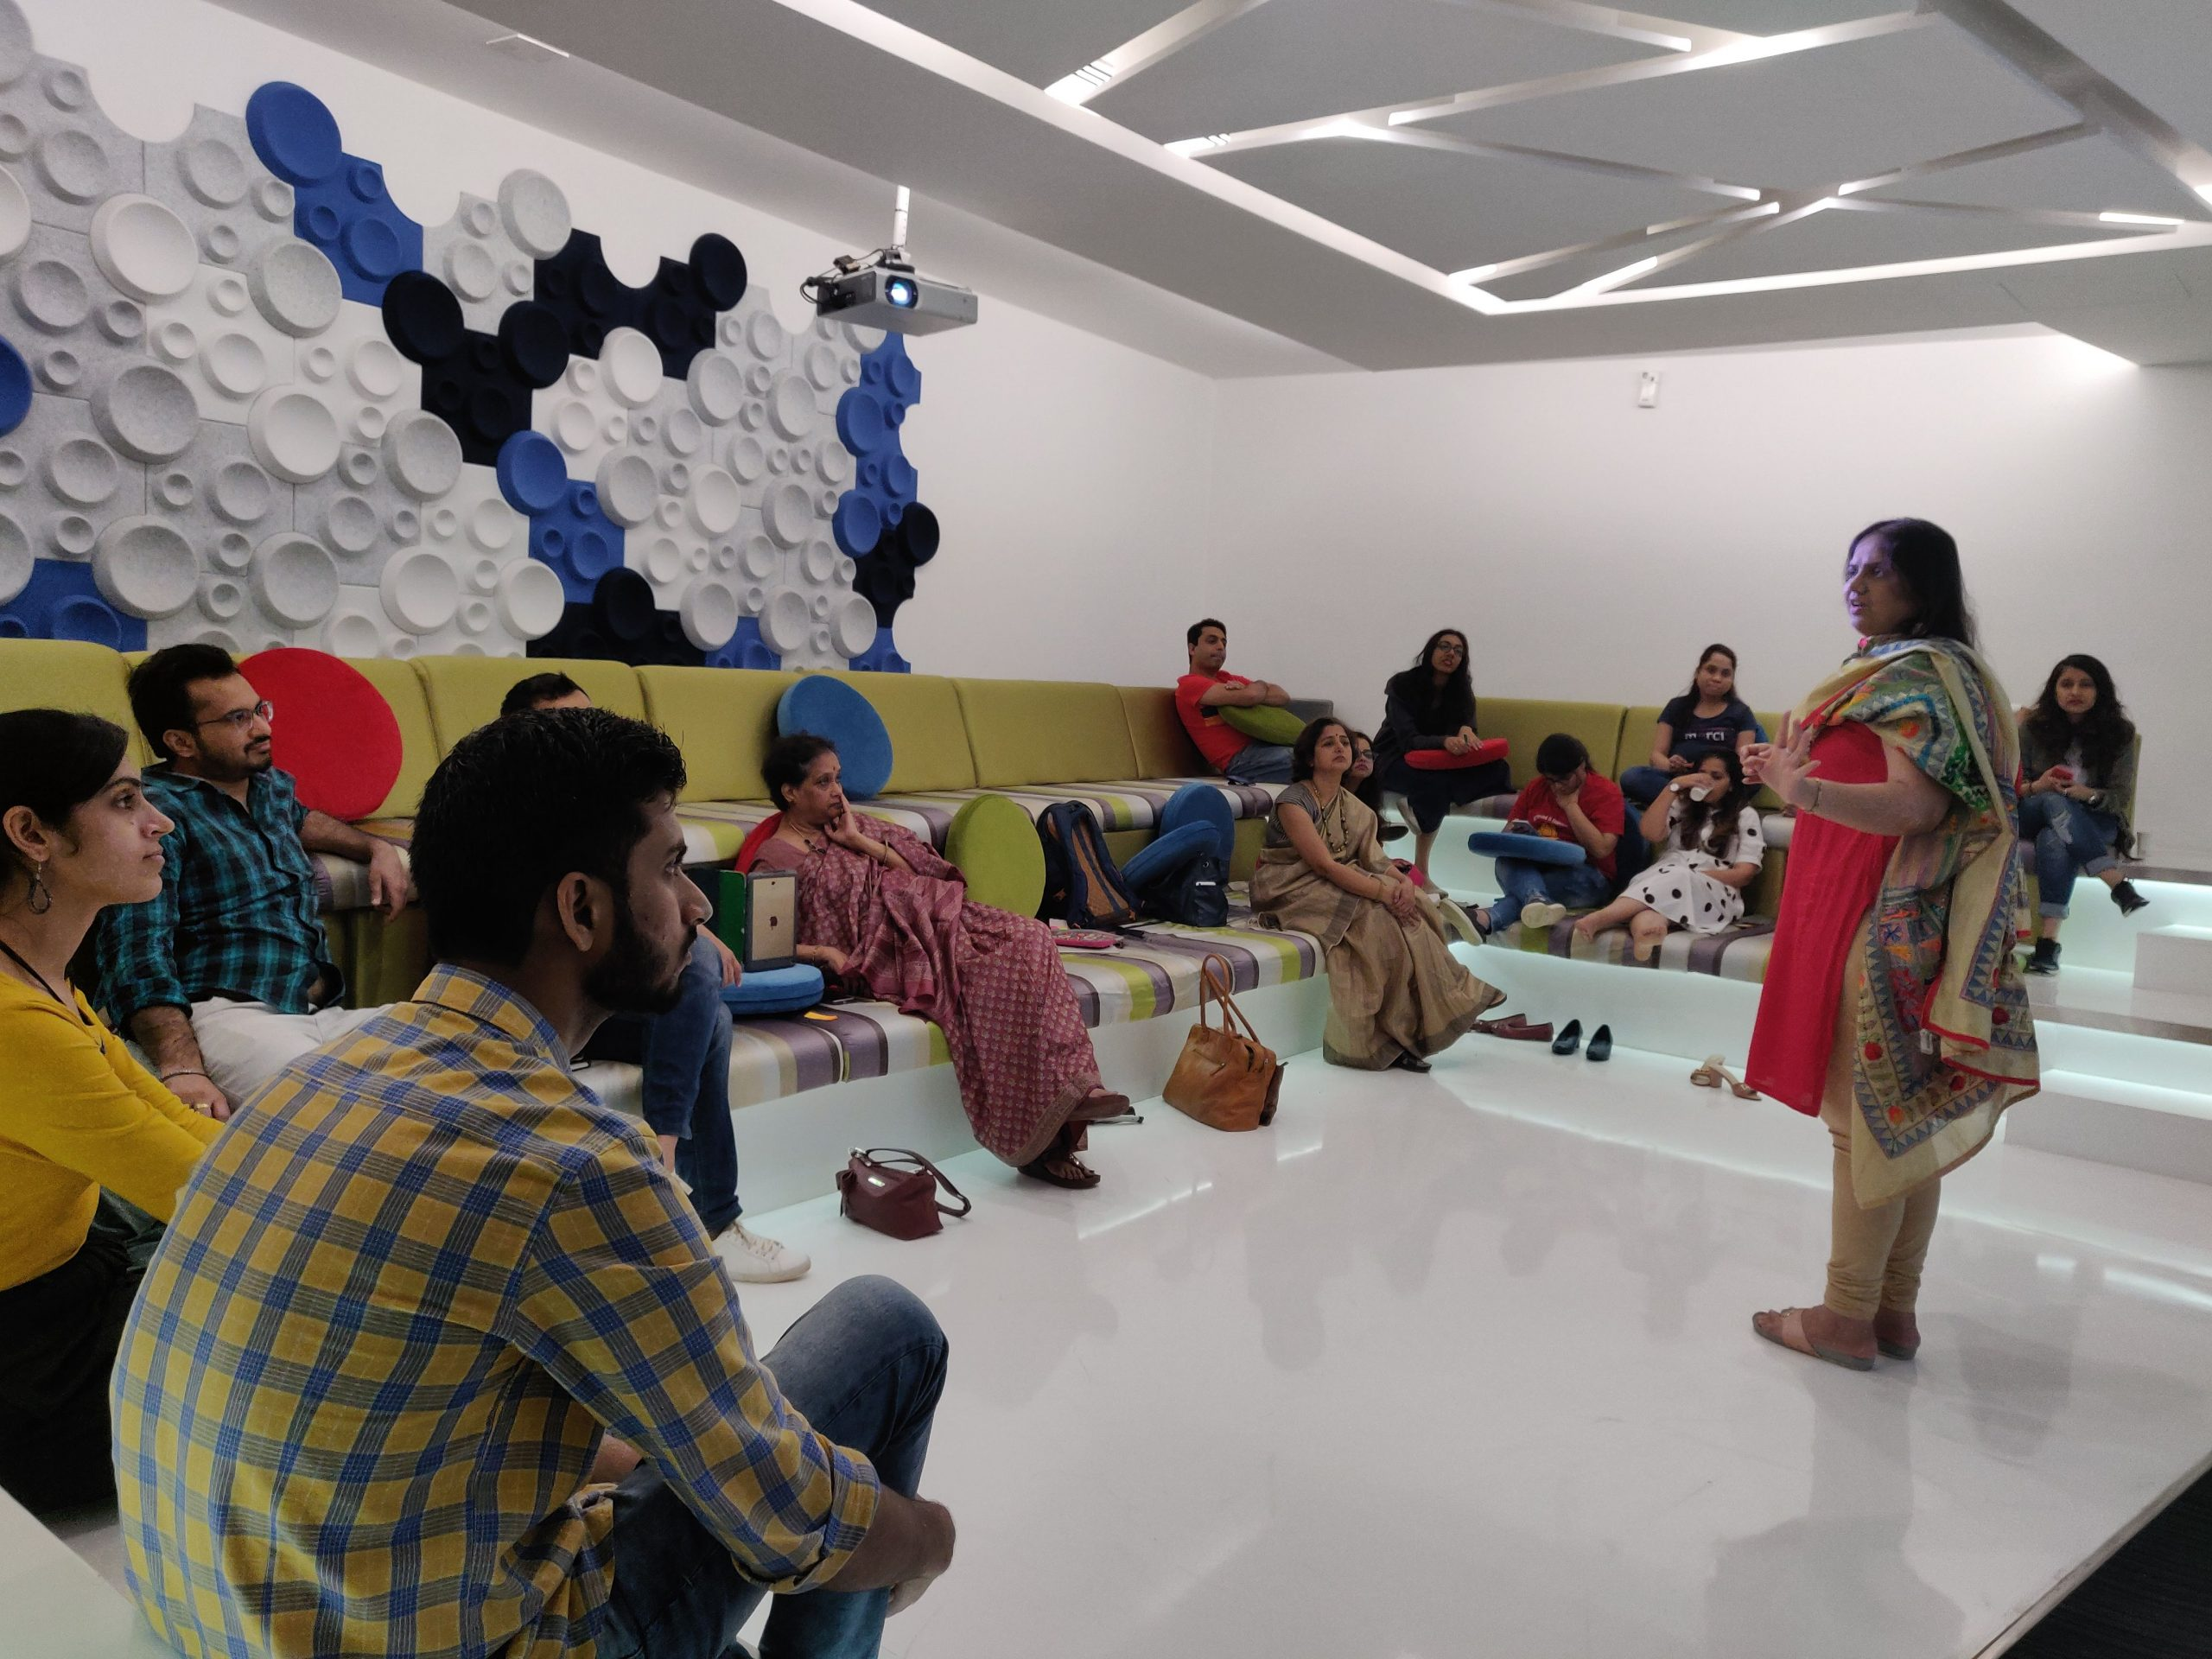 nidhi goyal standing in the front and speaking while participants sit around the room listening intently. the room has white walls a geometric blue and white design on the walls